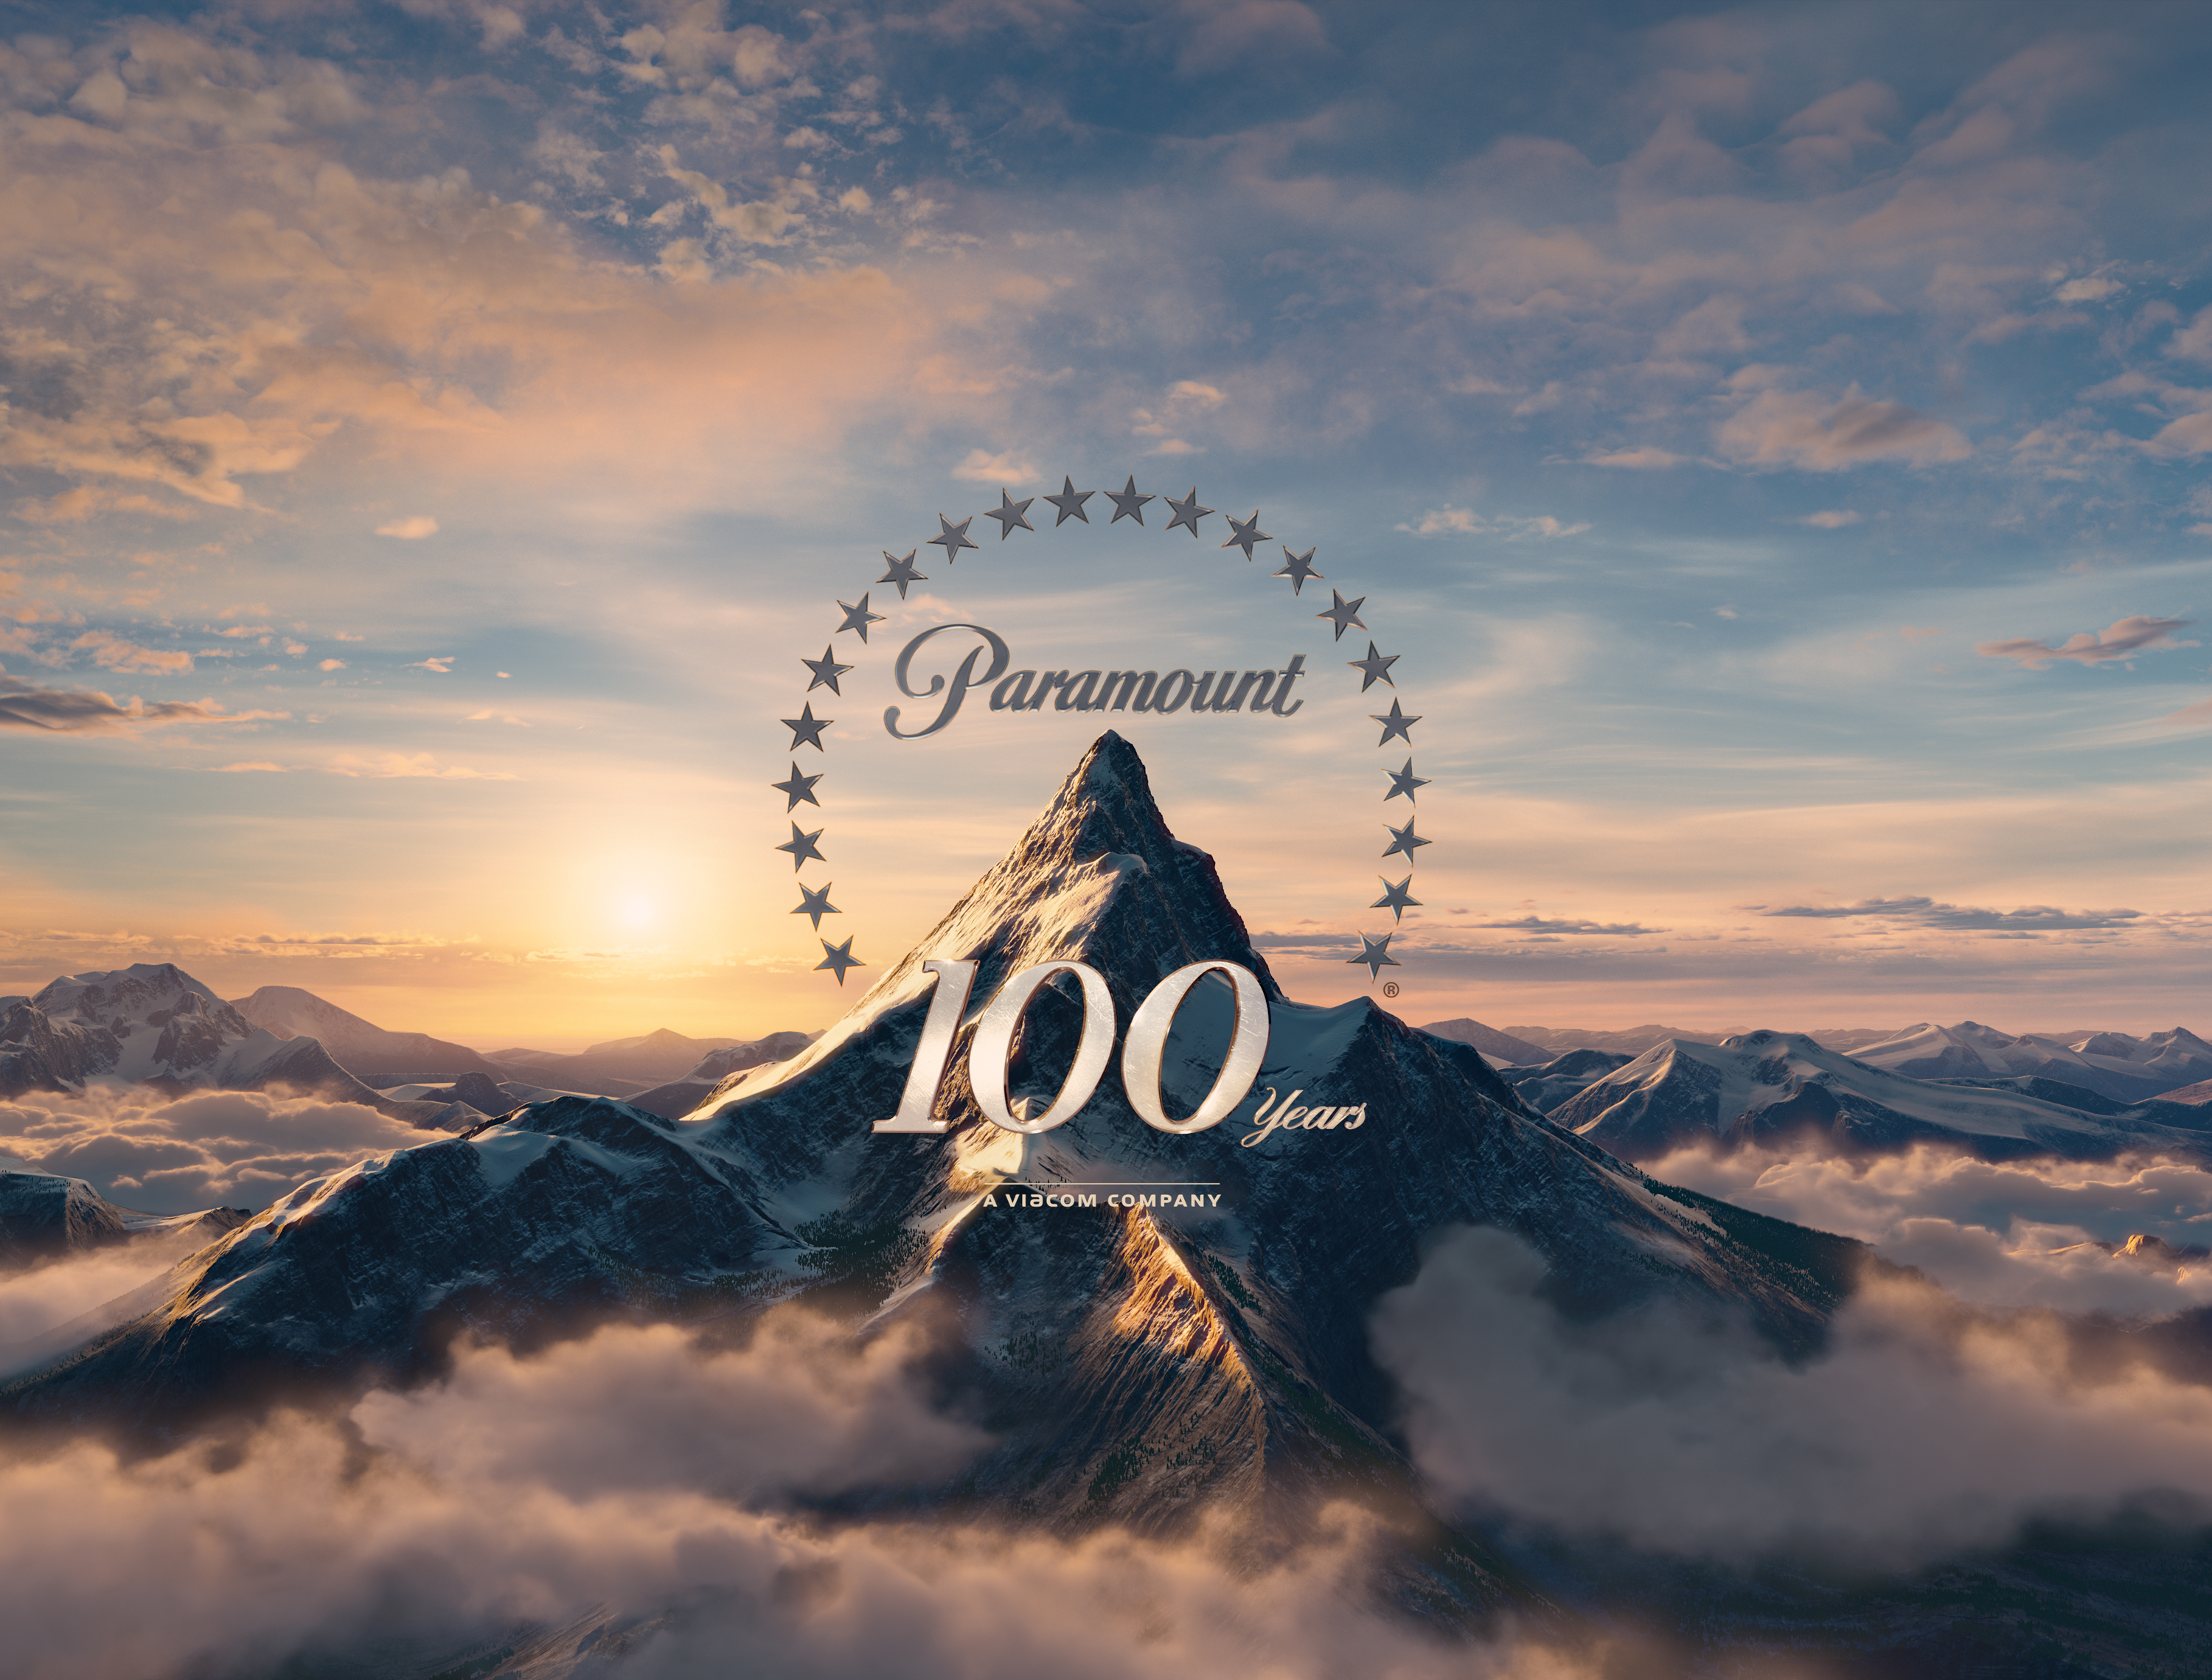 paramount 100 years a viacom company logo - photo #1